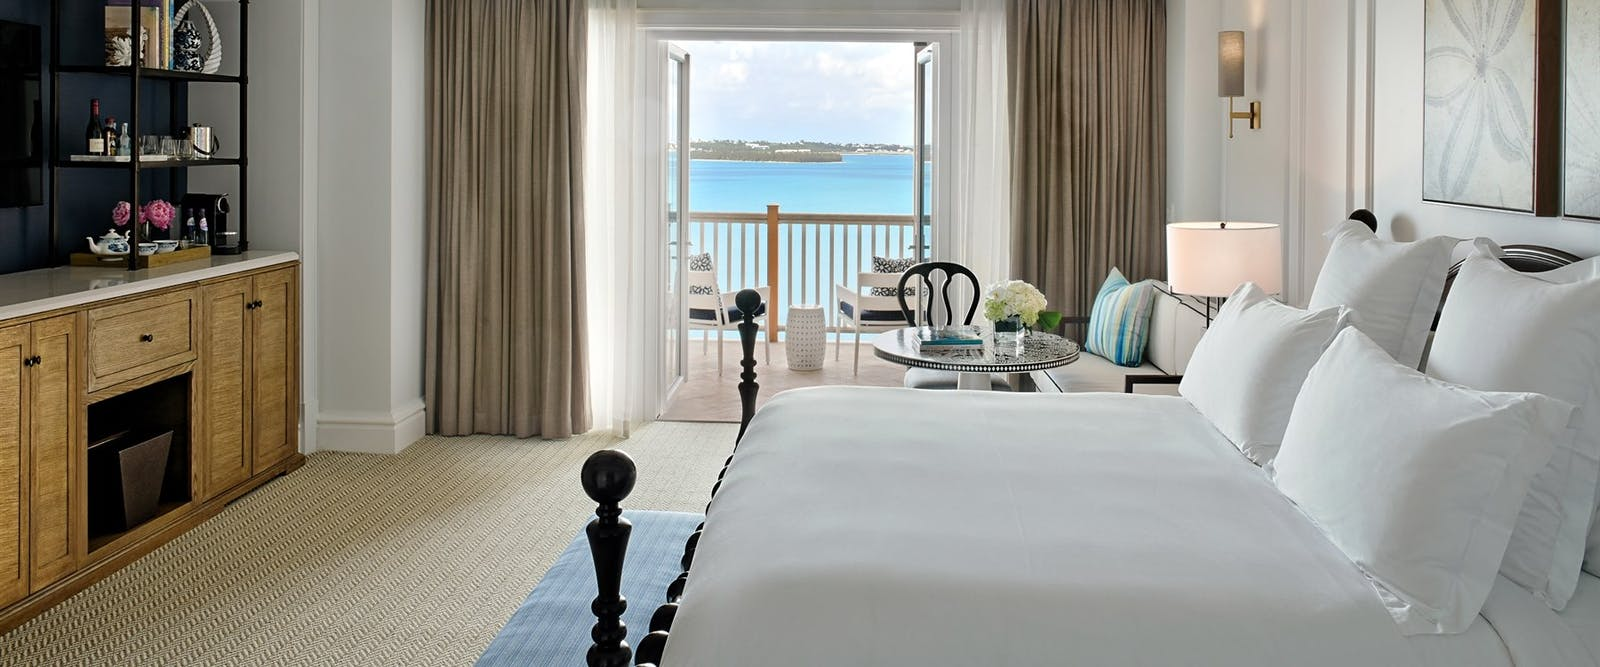 Ocean View King Room at Rosewood Tuckers Point, Bermuda